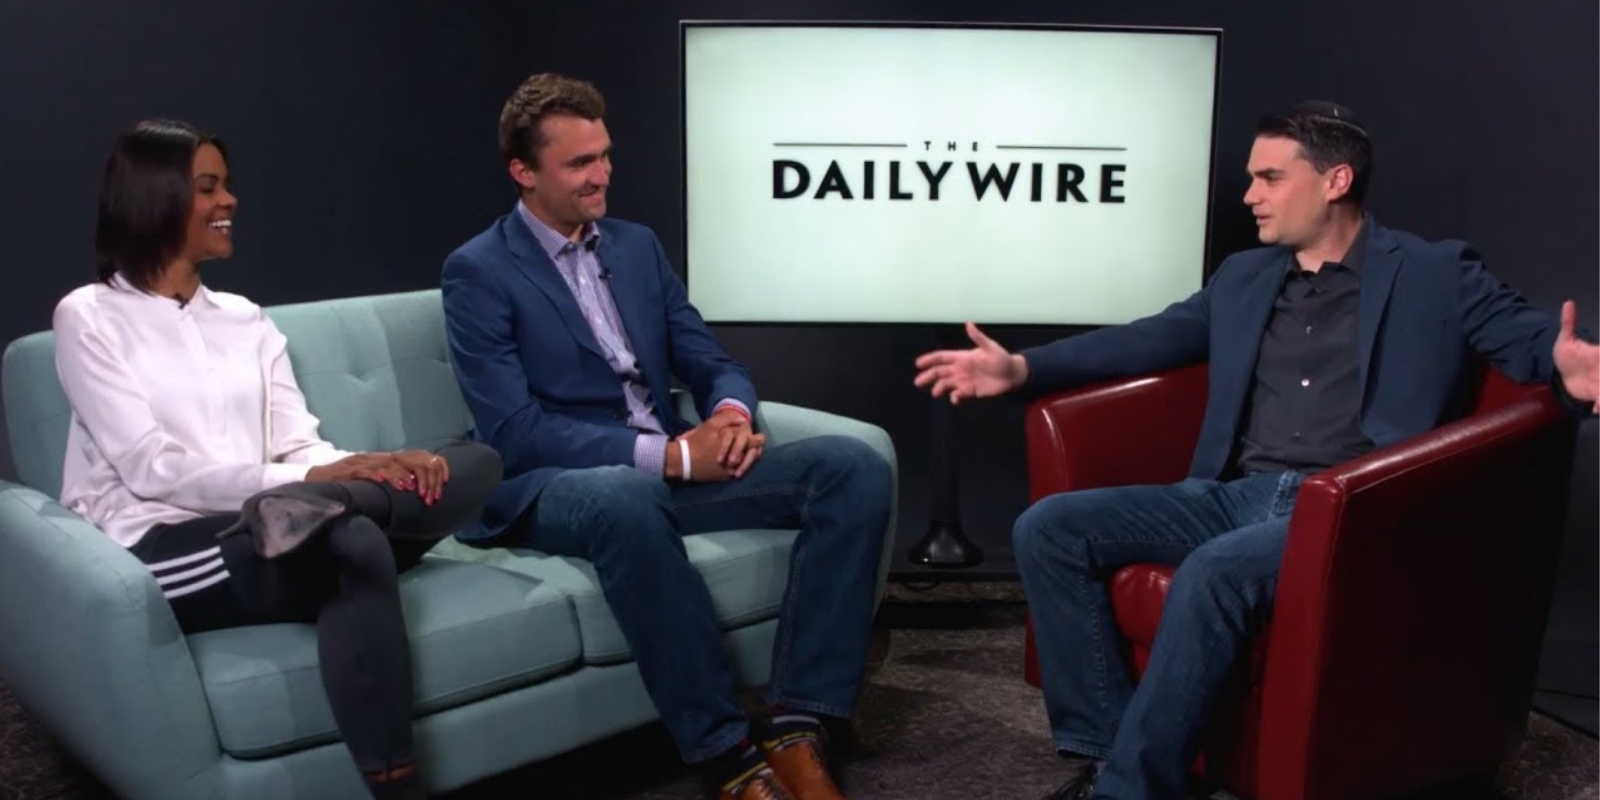 NPR is desperate to censor The Daily Wire because they are conservative and successful